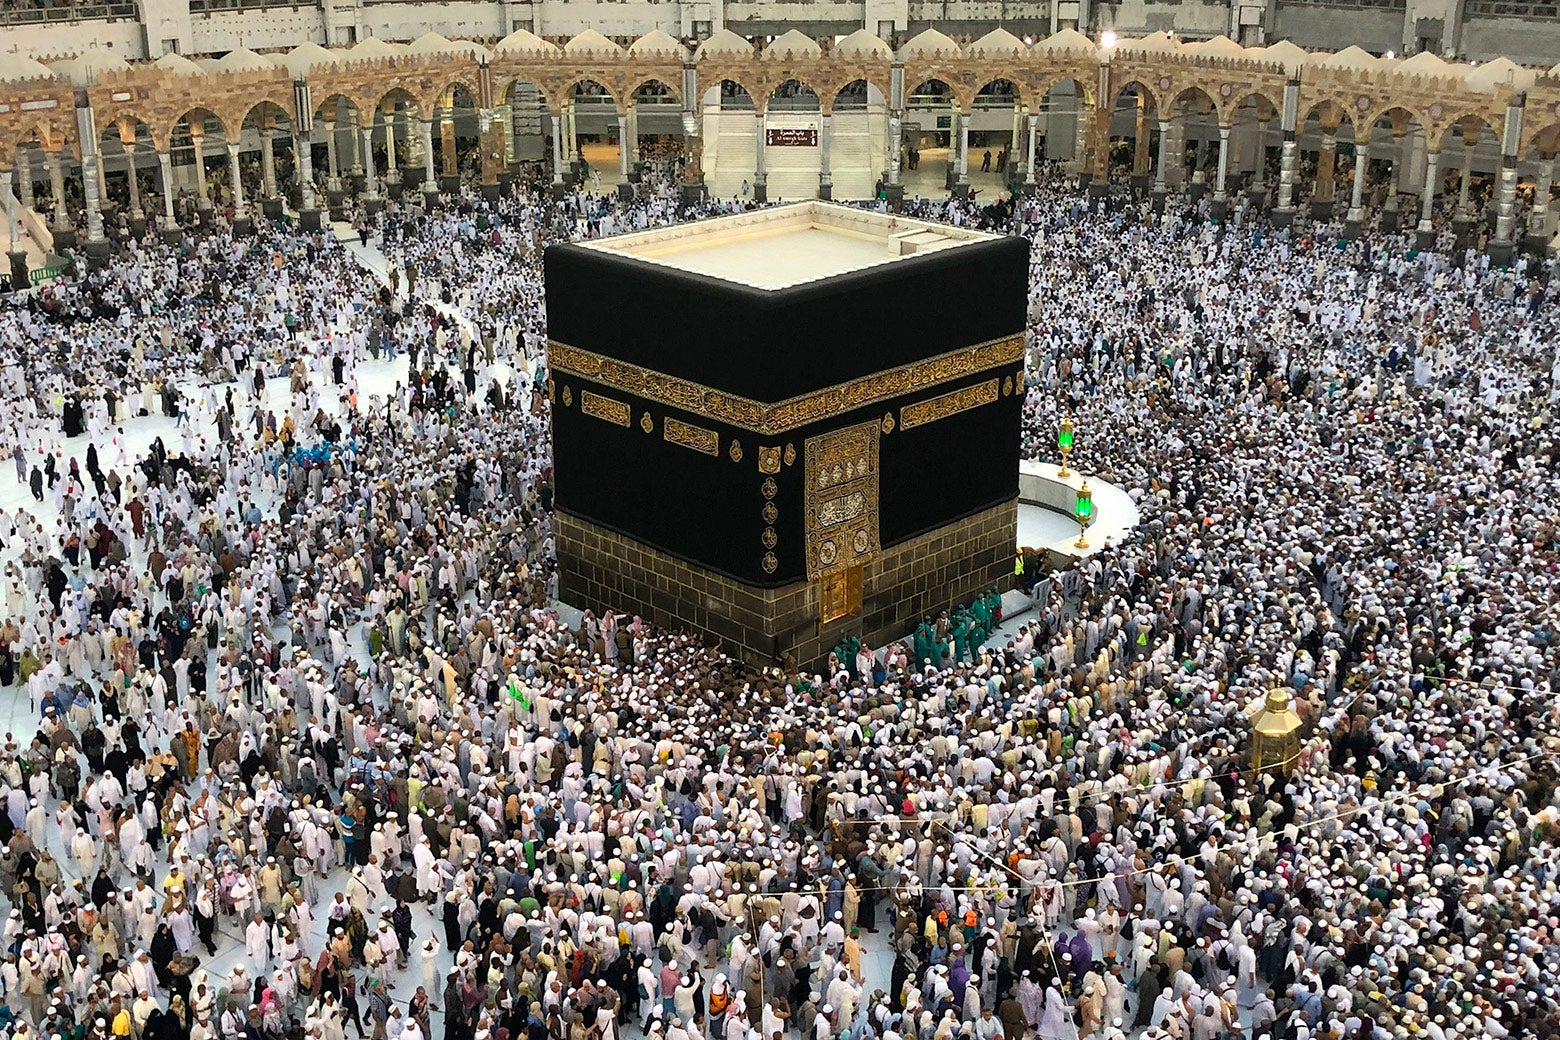 Muslim worshippers pray and circumambulate around the Kaaba.